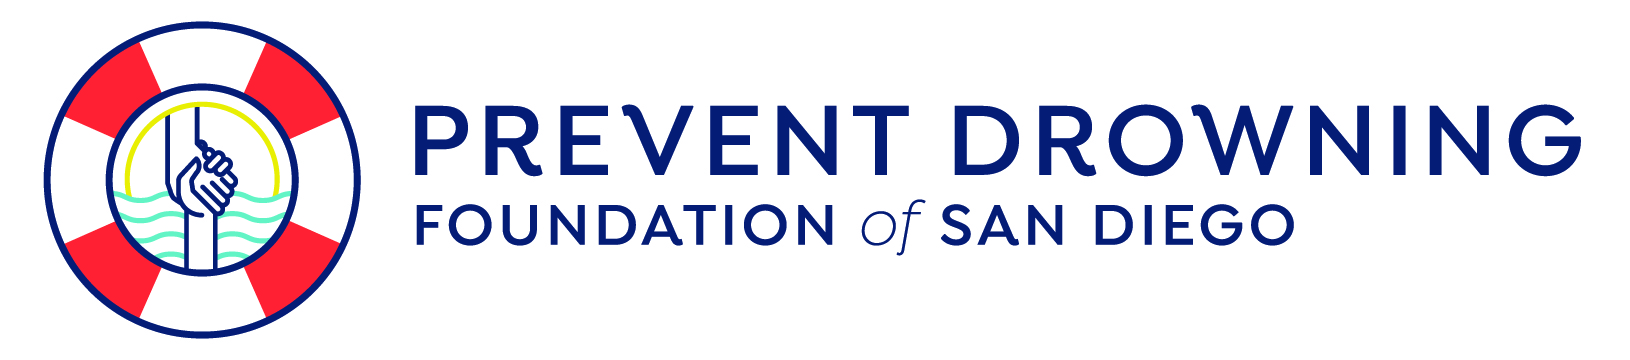 Prevent Drowning Foundation of San Diego